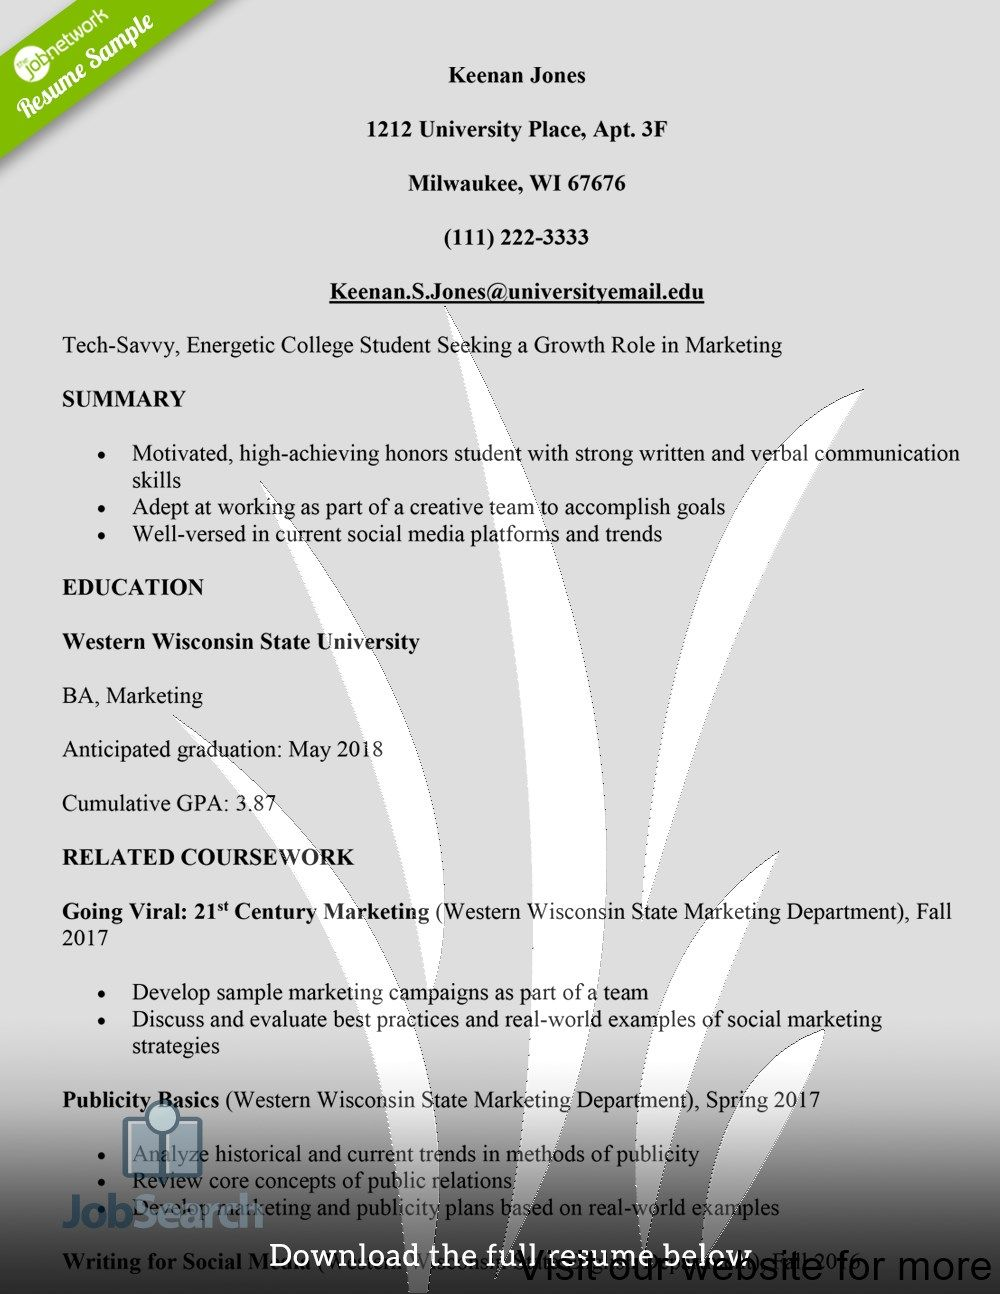 resume template education section in 2020 Resume